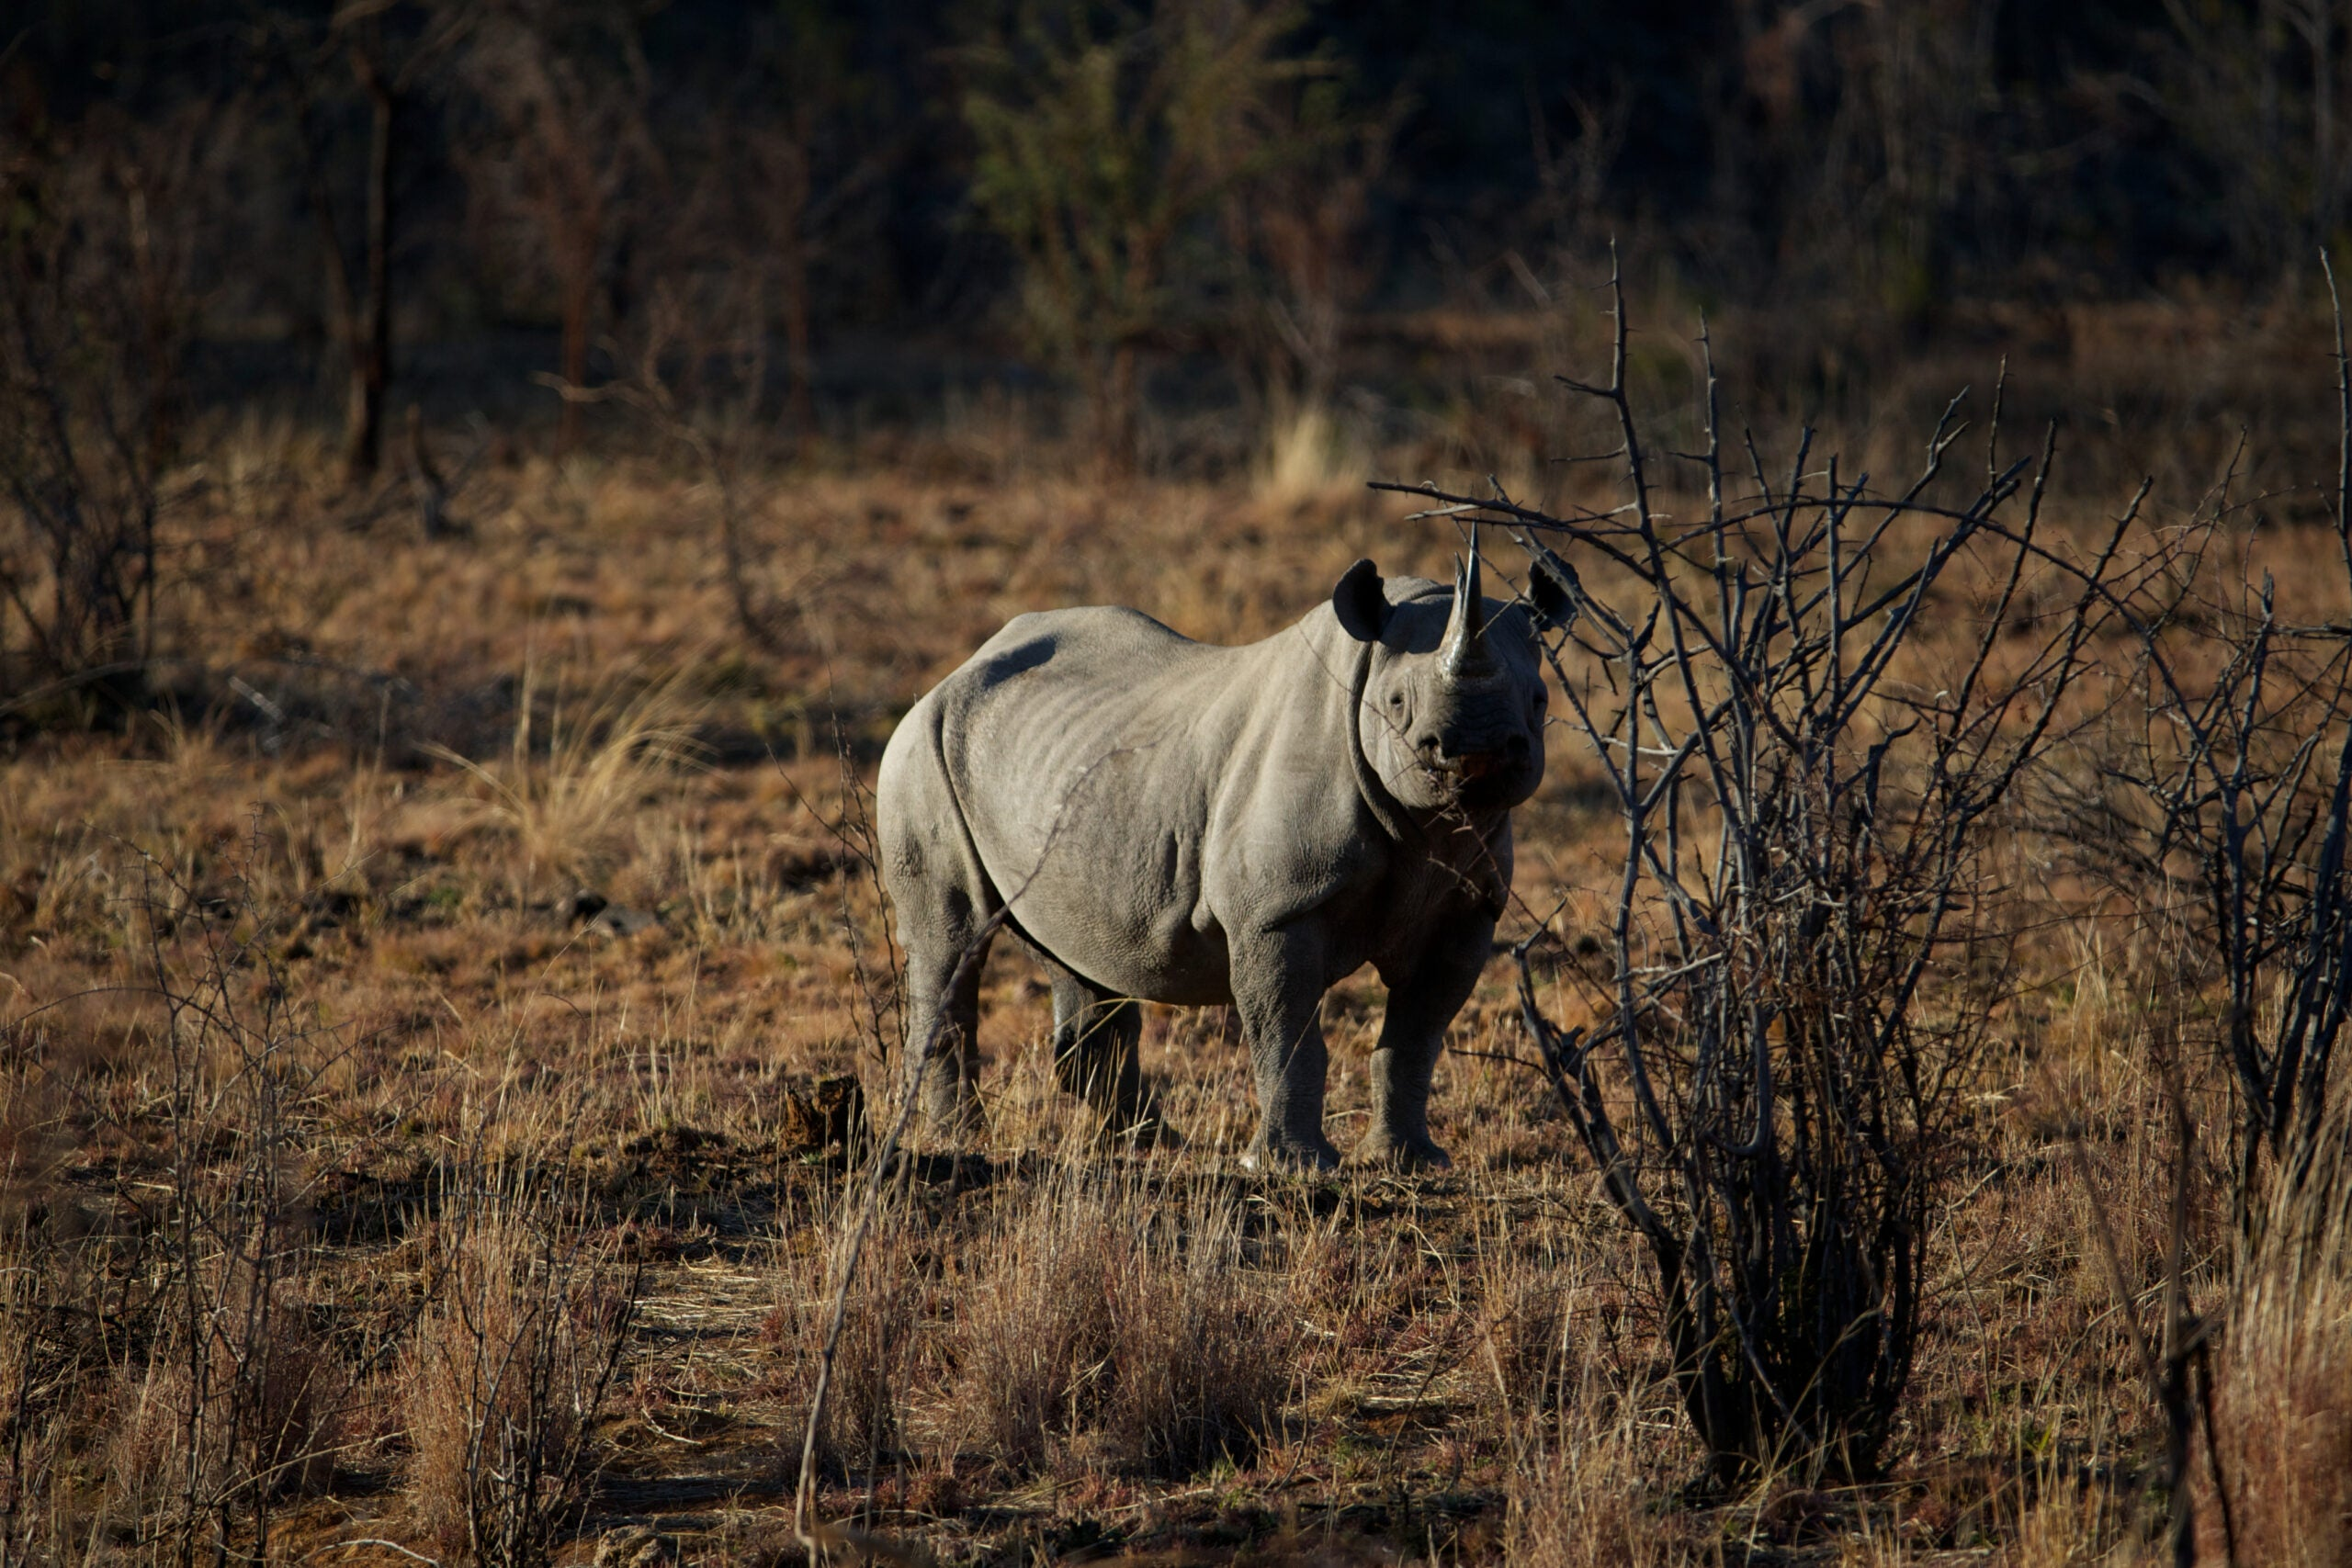 Ecosystems Suffer As Large Herbivores Stand On The Brink Of Extinction